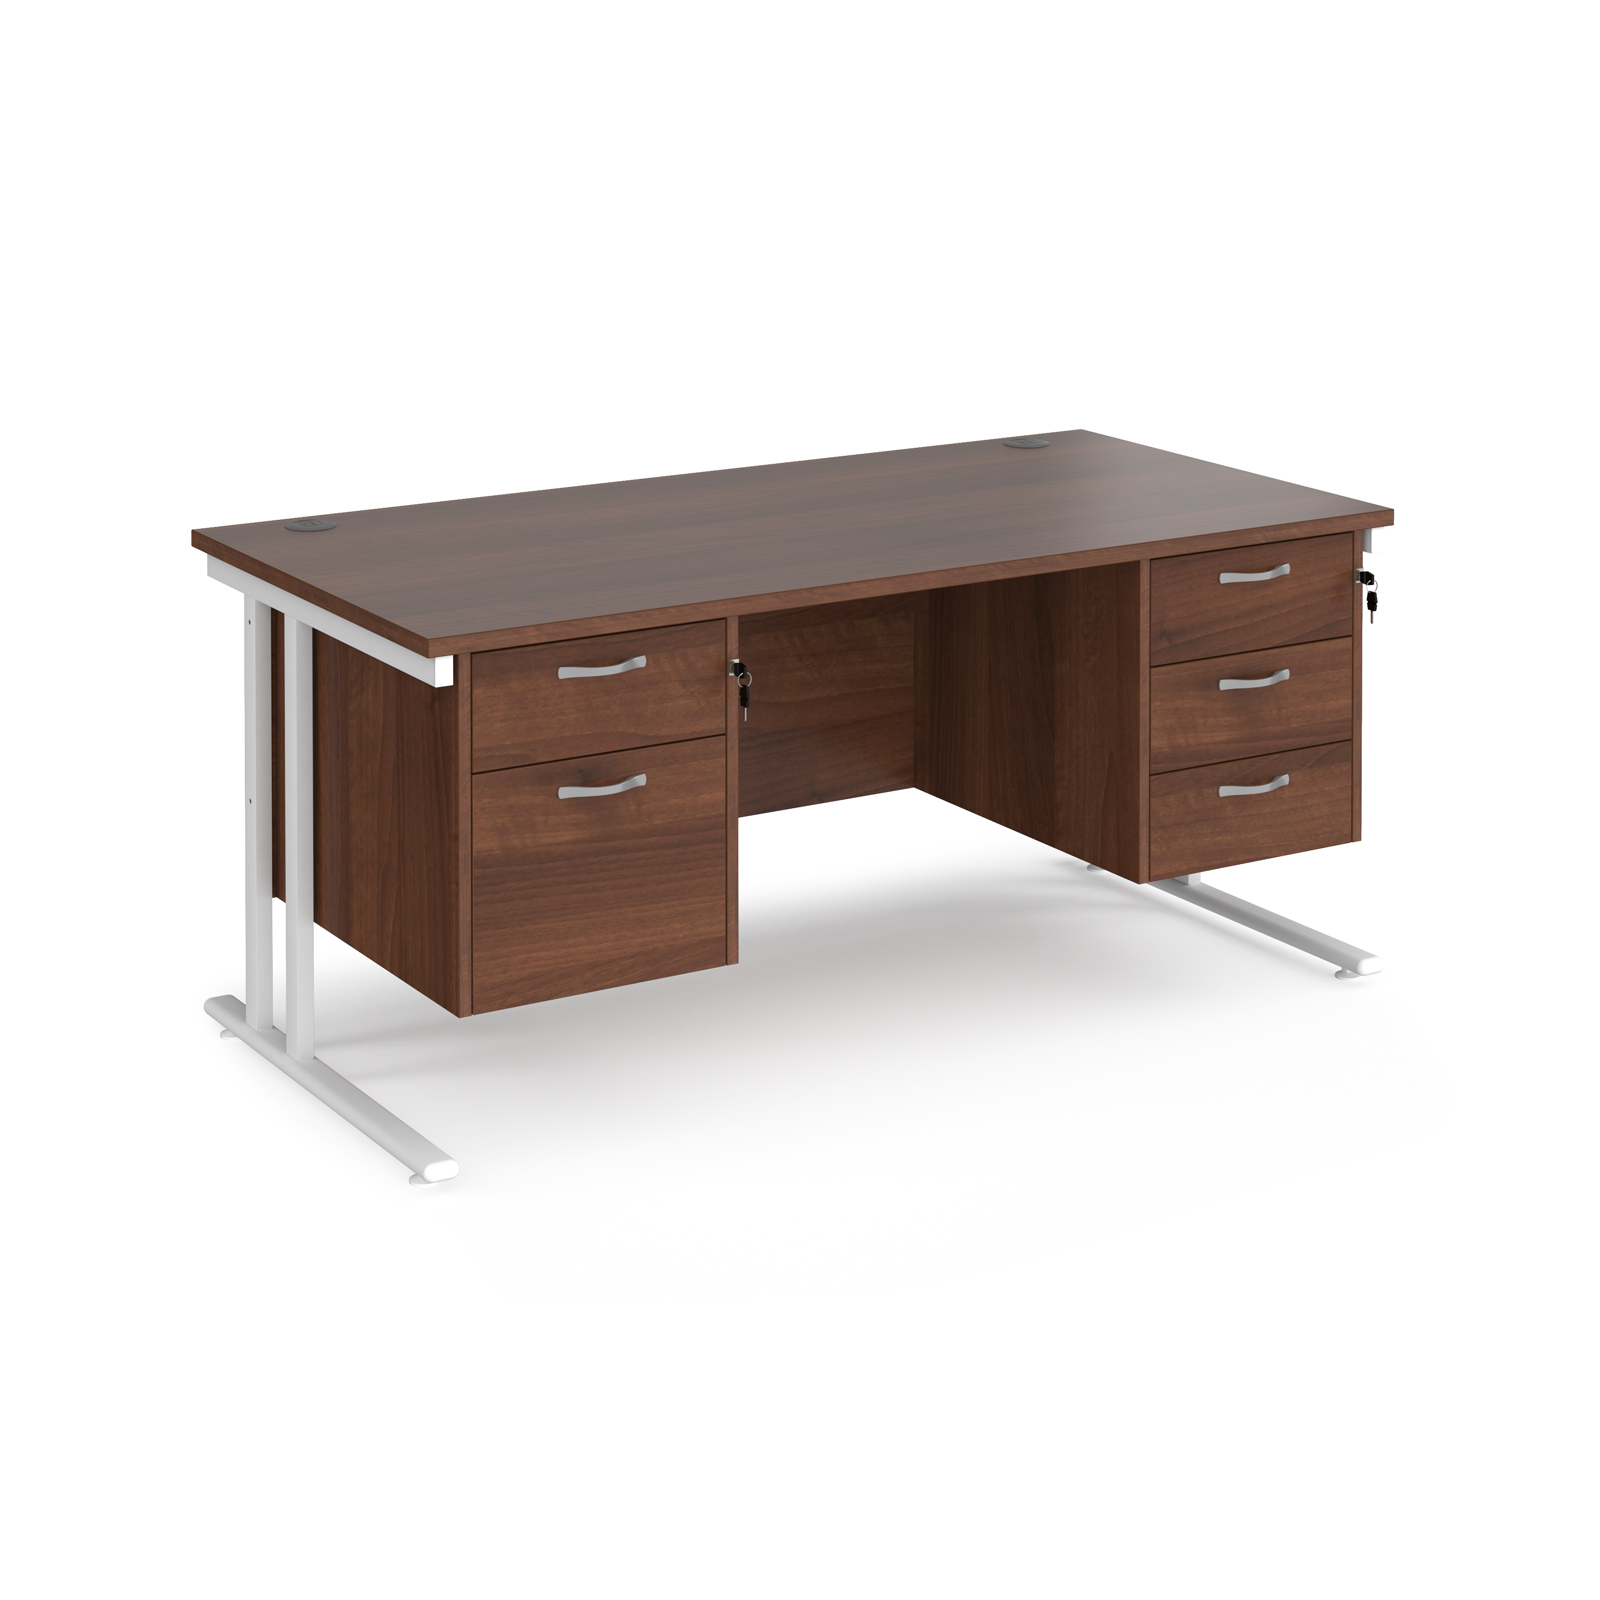 Maestro 25 straight desk 1600mm x 800mm with 2 and 3 drawer pedestals - white cantilever leg frame, walnut top